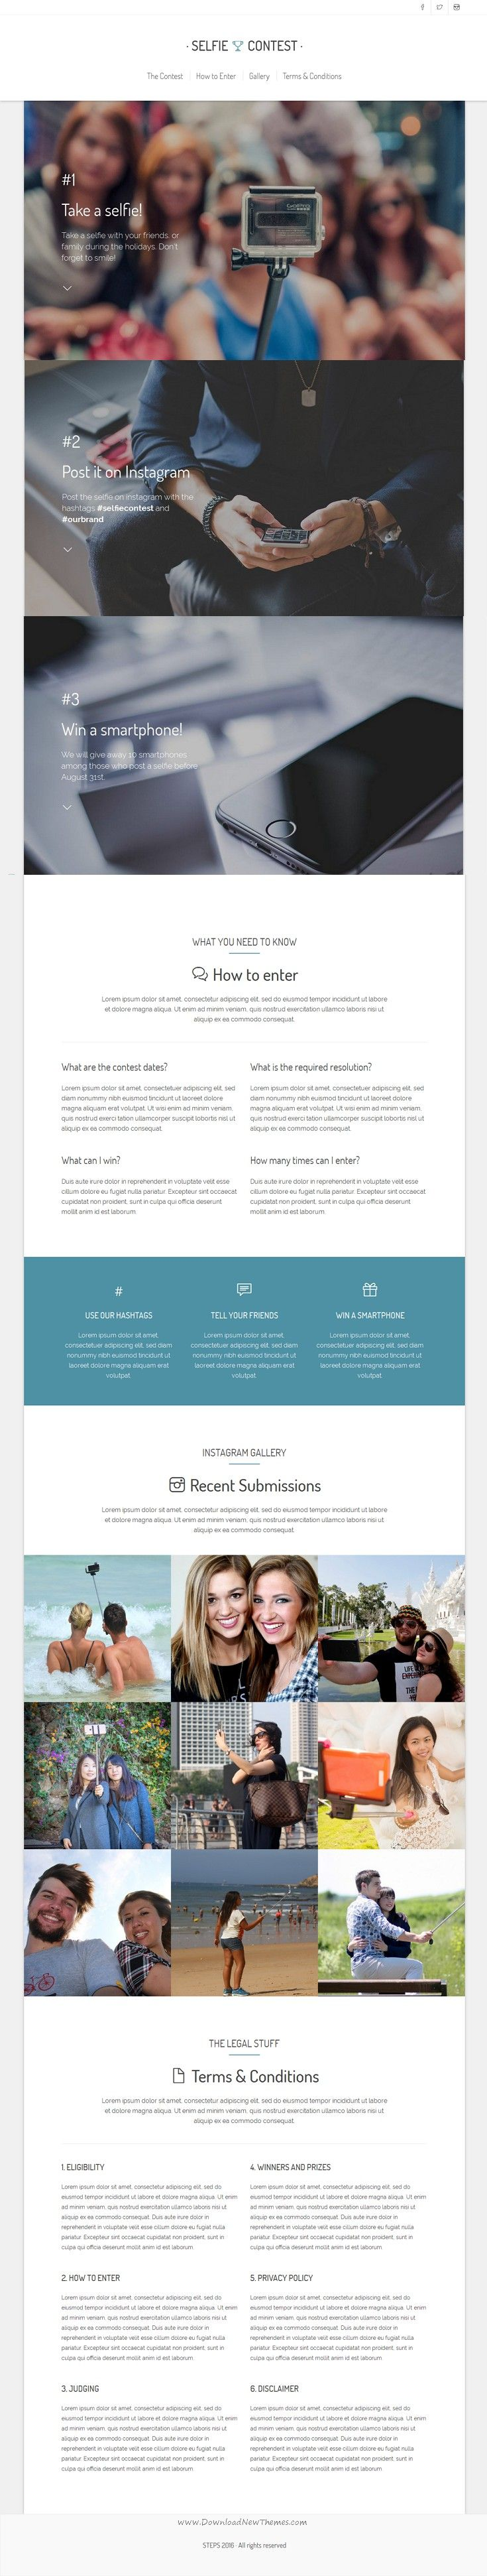 STEPS is wonderful Step-by-Step Bootstrap Landing Page template. #contest #marketing #landingpagetemplate Download Now!